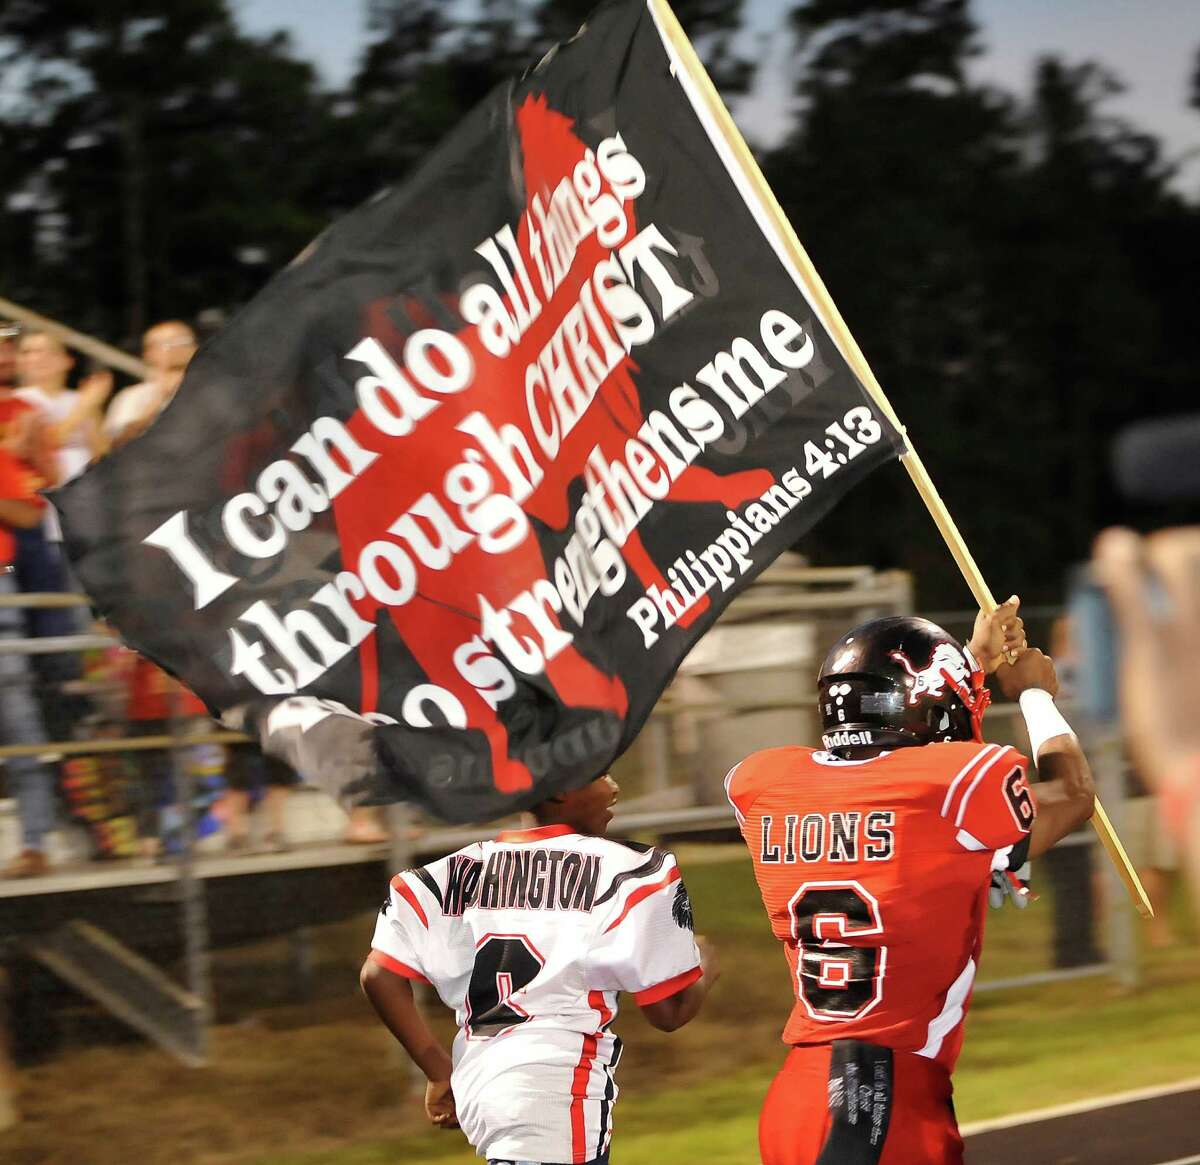 Kountze football player #6 Jamazdon Powell carries a flag as the team comes into the stadium. This was the first home football game in Kountze since the sign controversy started and since the Thursday hearing that determined the cheerleaders could or could not use their faith-based signs. Dave Ryan/The Enterprise